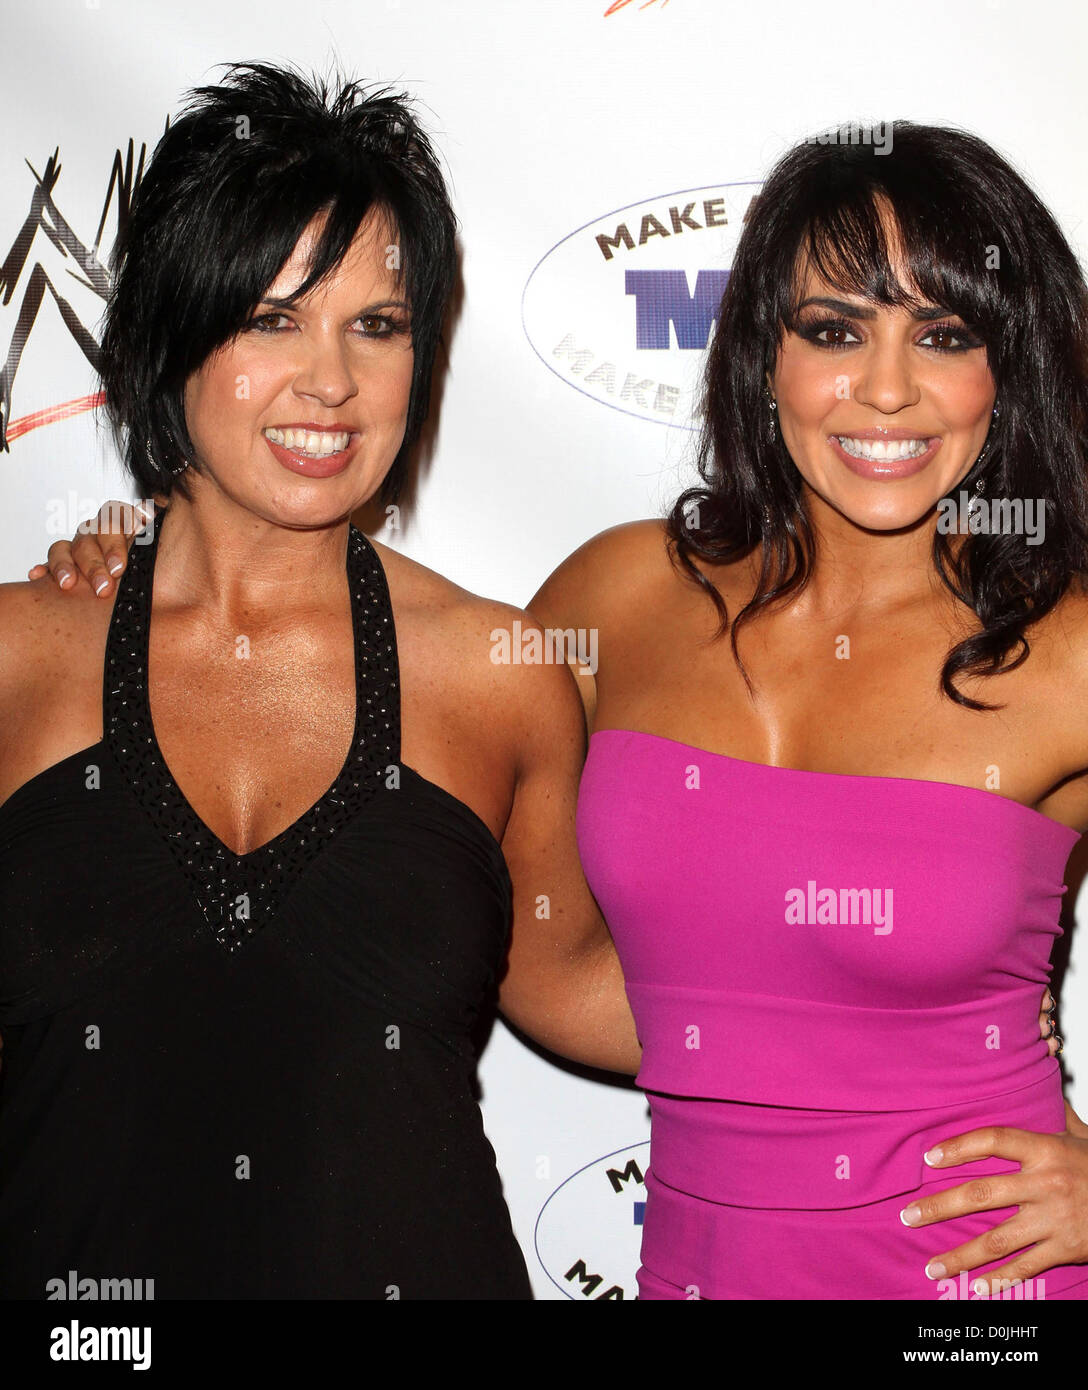 Divas Layla And Vickie Guerrero Wwe And The Muscular Dystrophy Association Mda Join Forces To Present The Annual Wwe